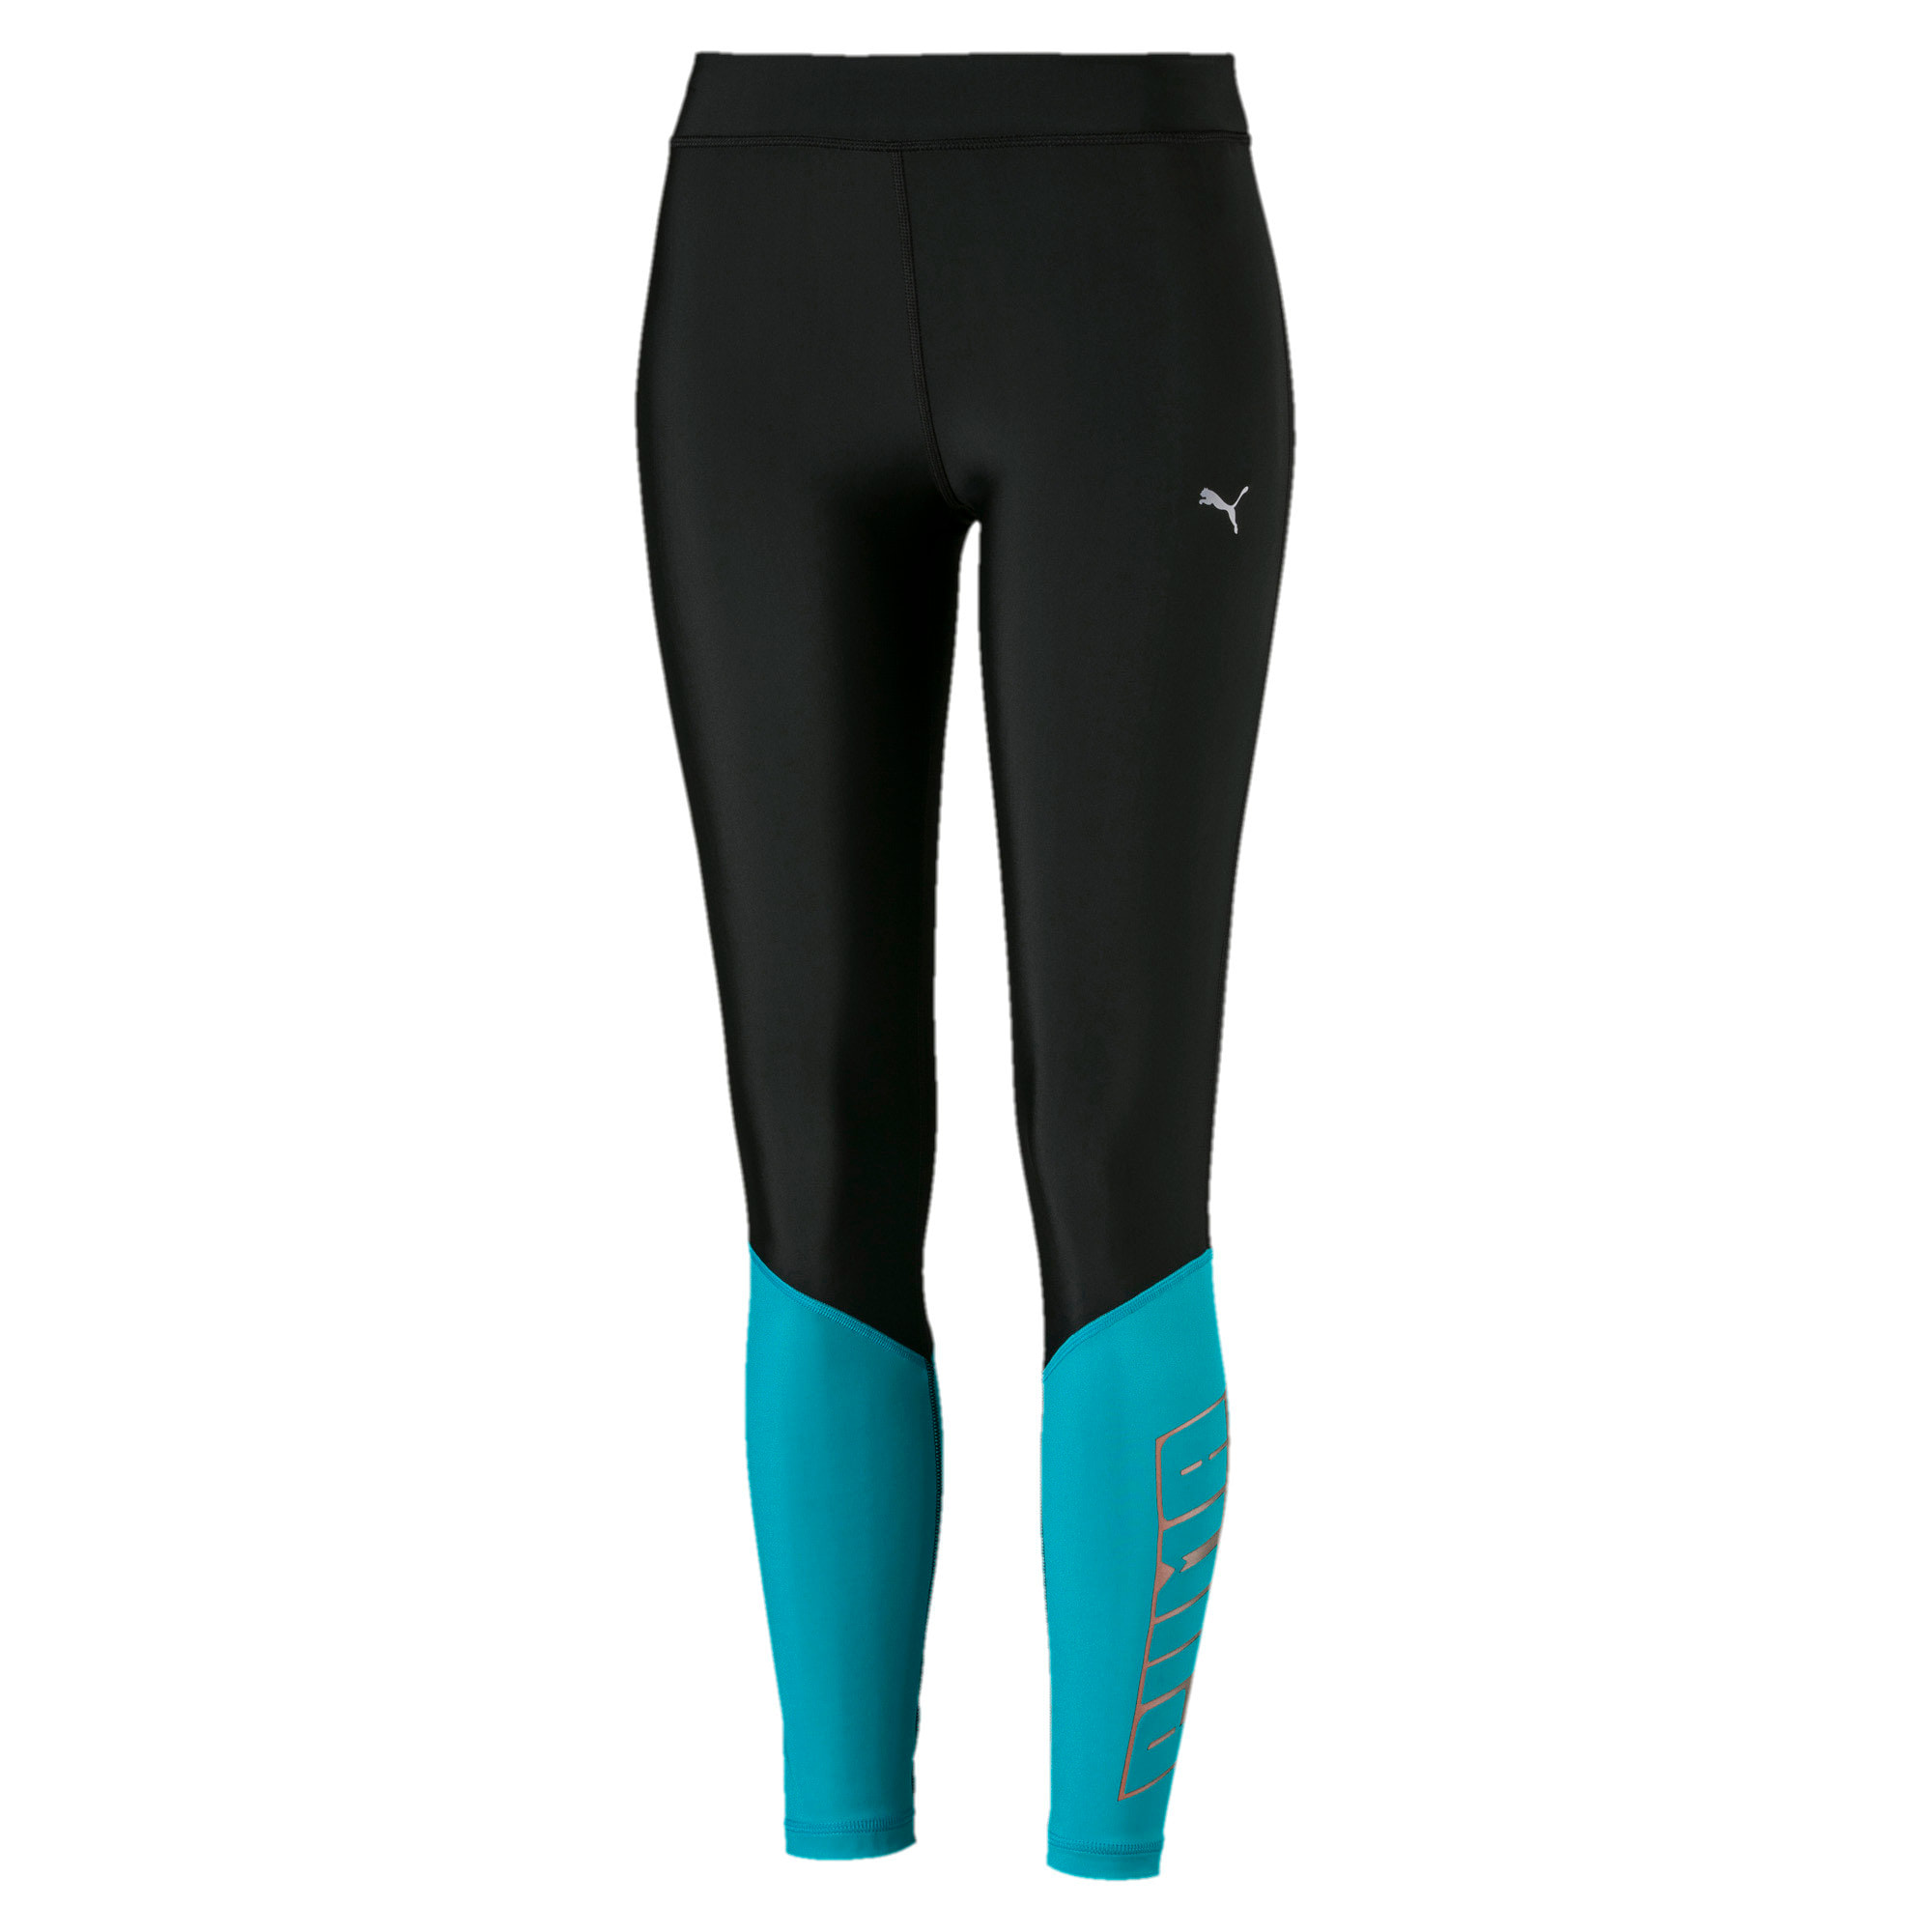 Thumbnail 2 of Aire Women's 7/8 Leggings, Puma Black-Caribbean Sea, medium